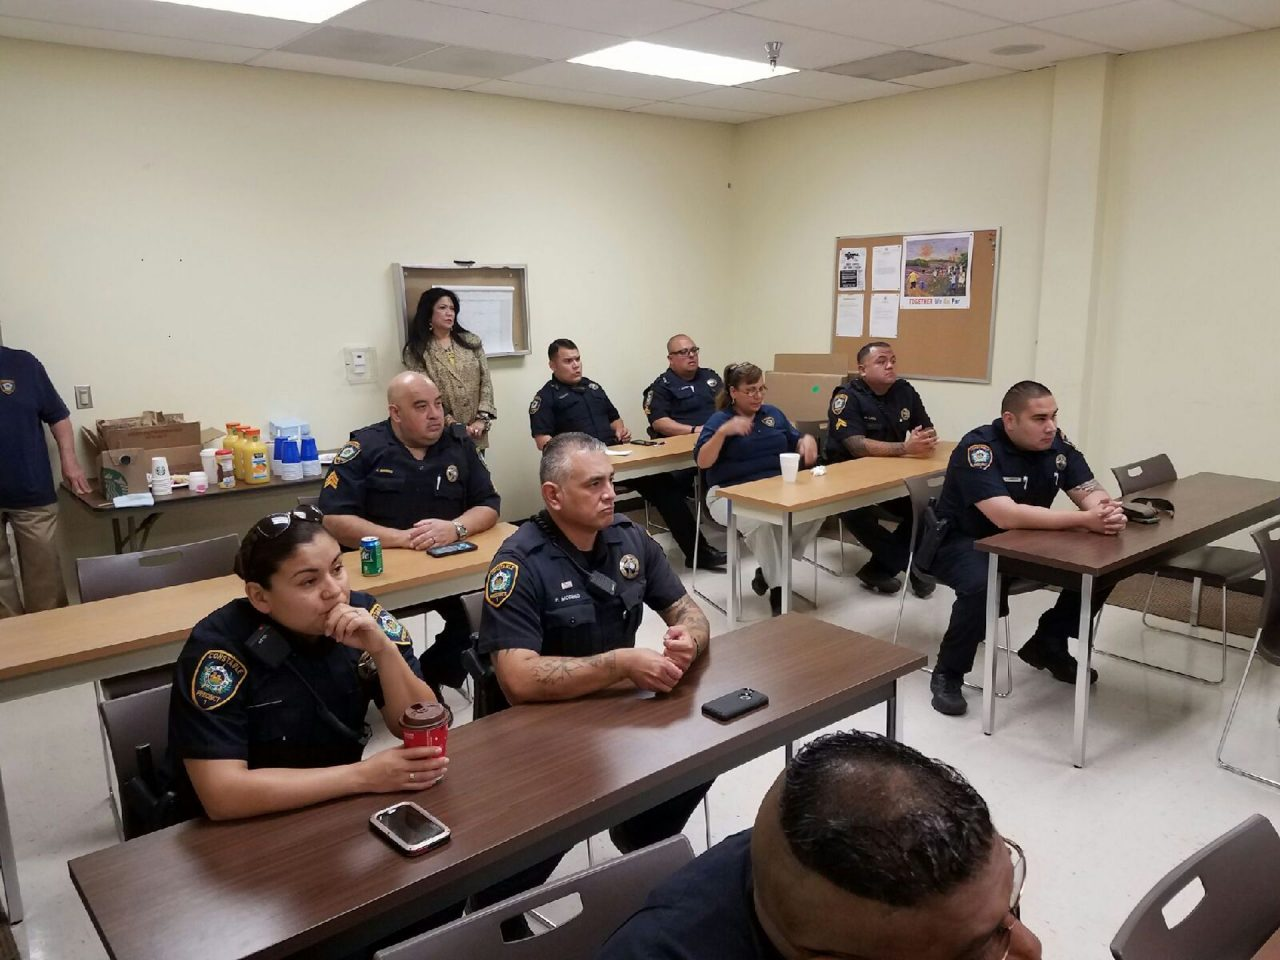 https://thetexan.news/wp-content/uploads/2020/09/bexar-constables-1280x960.jpg